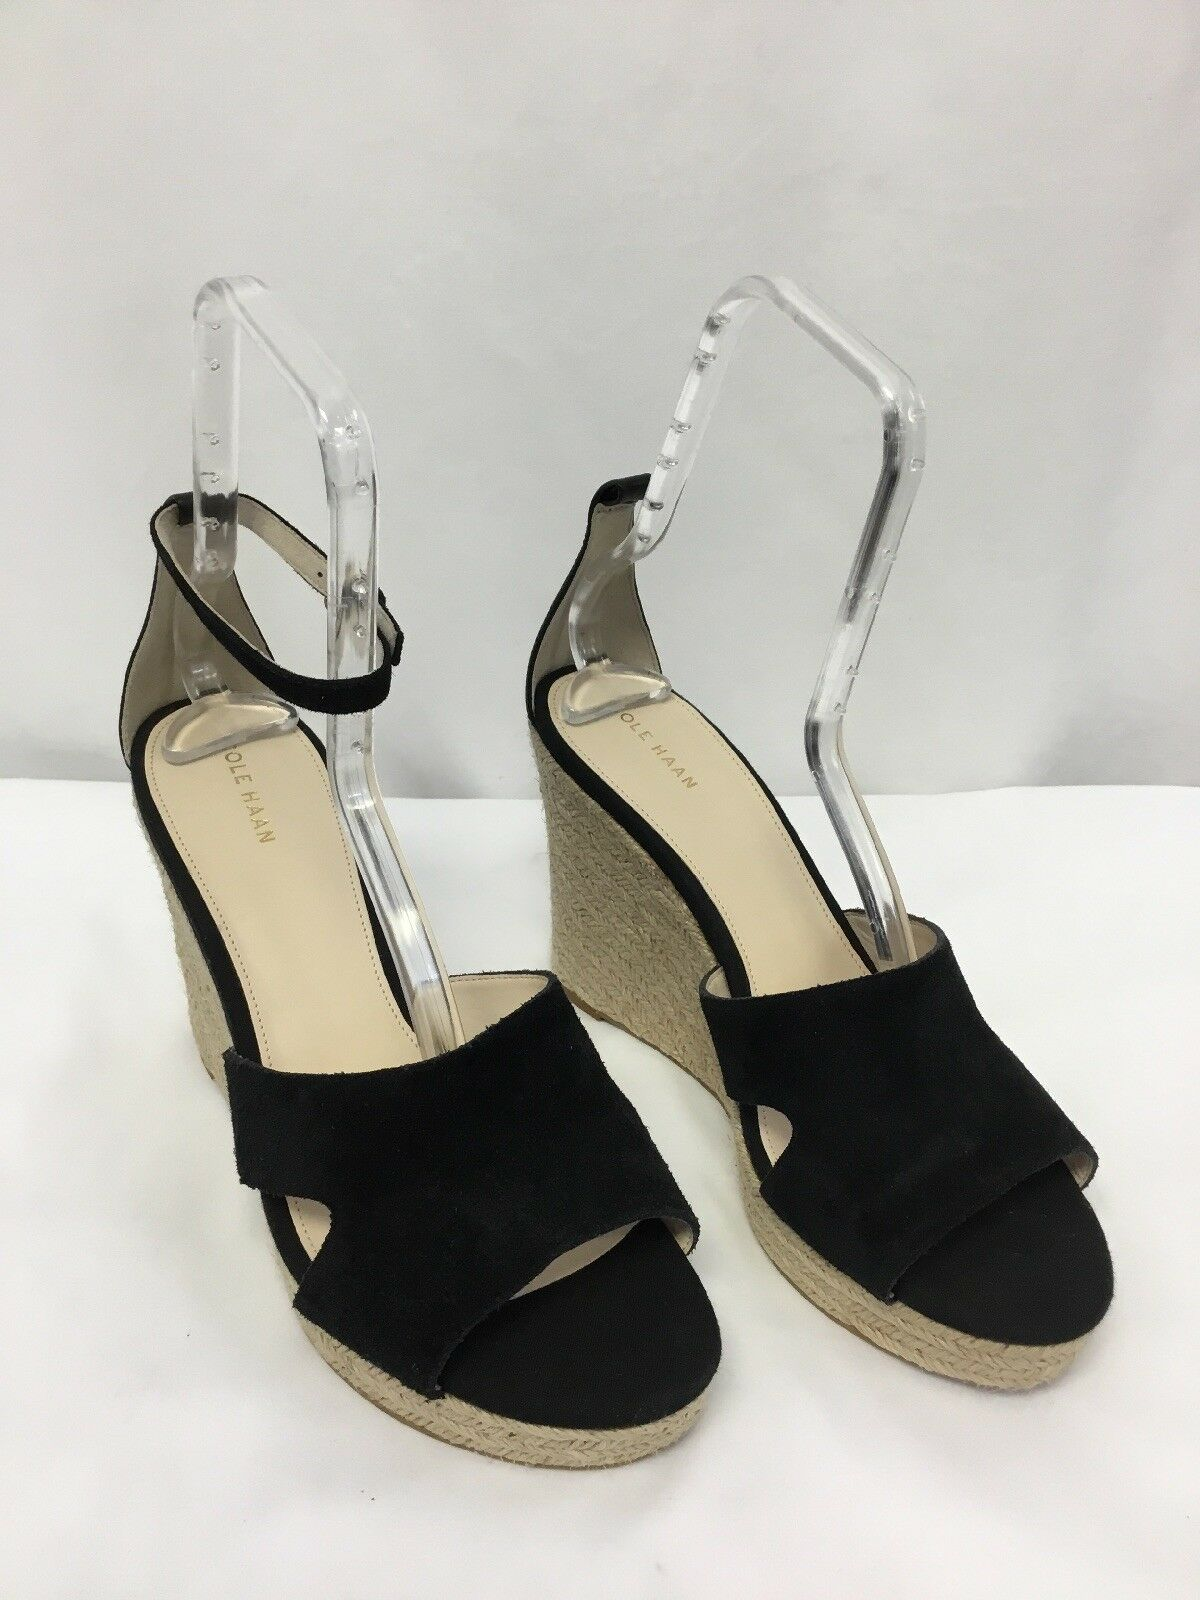 Cole Haan Giselle Hi Espadrille Wedge Sandal nero  Missing Strap Dimensione 10.5B